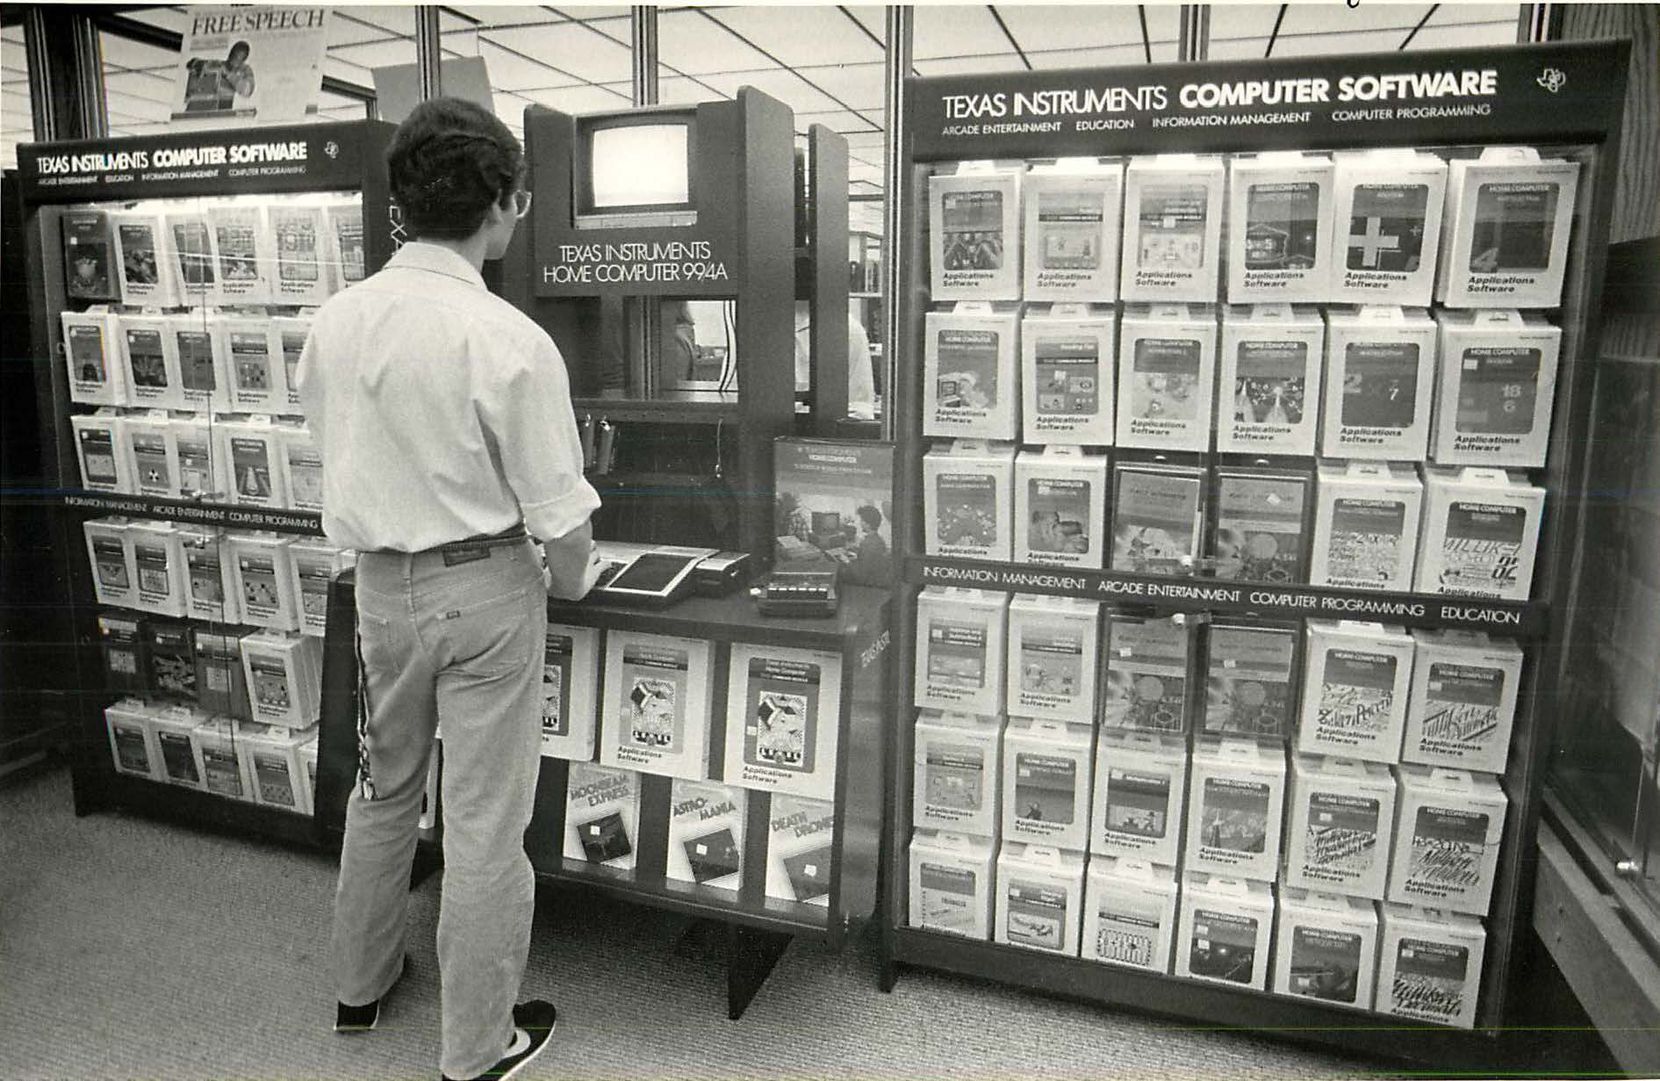 October 29, 1983: A customer looks through some Texas Instruments software items